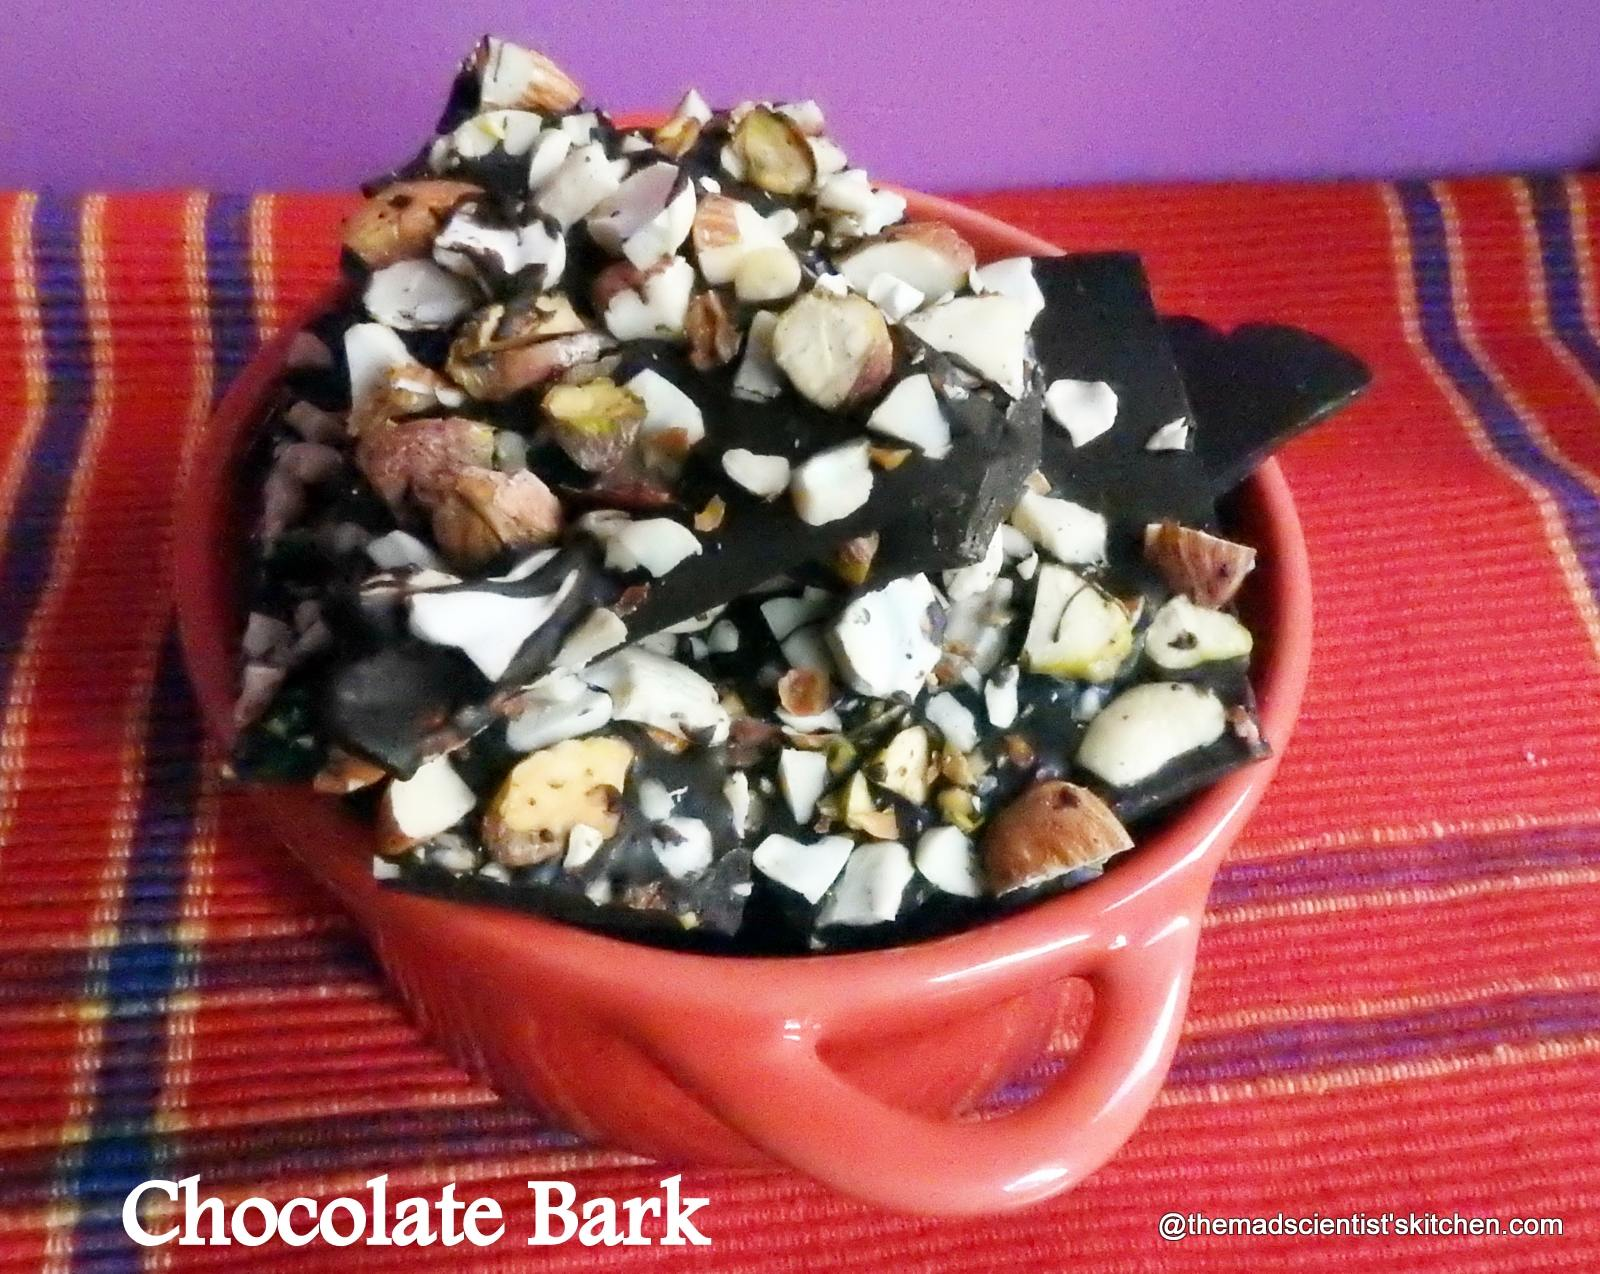 Spread the Joy with Chocolate Bark